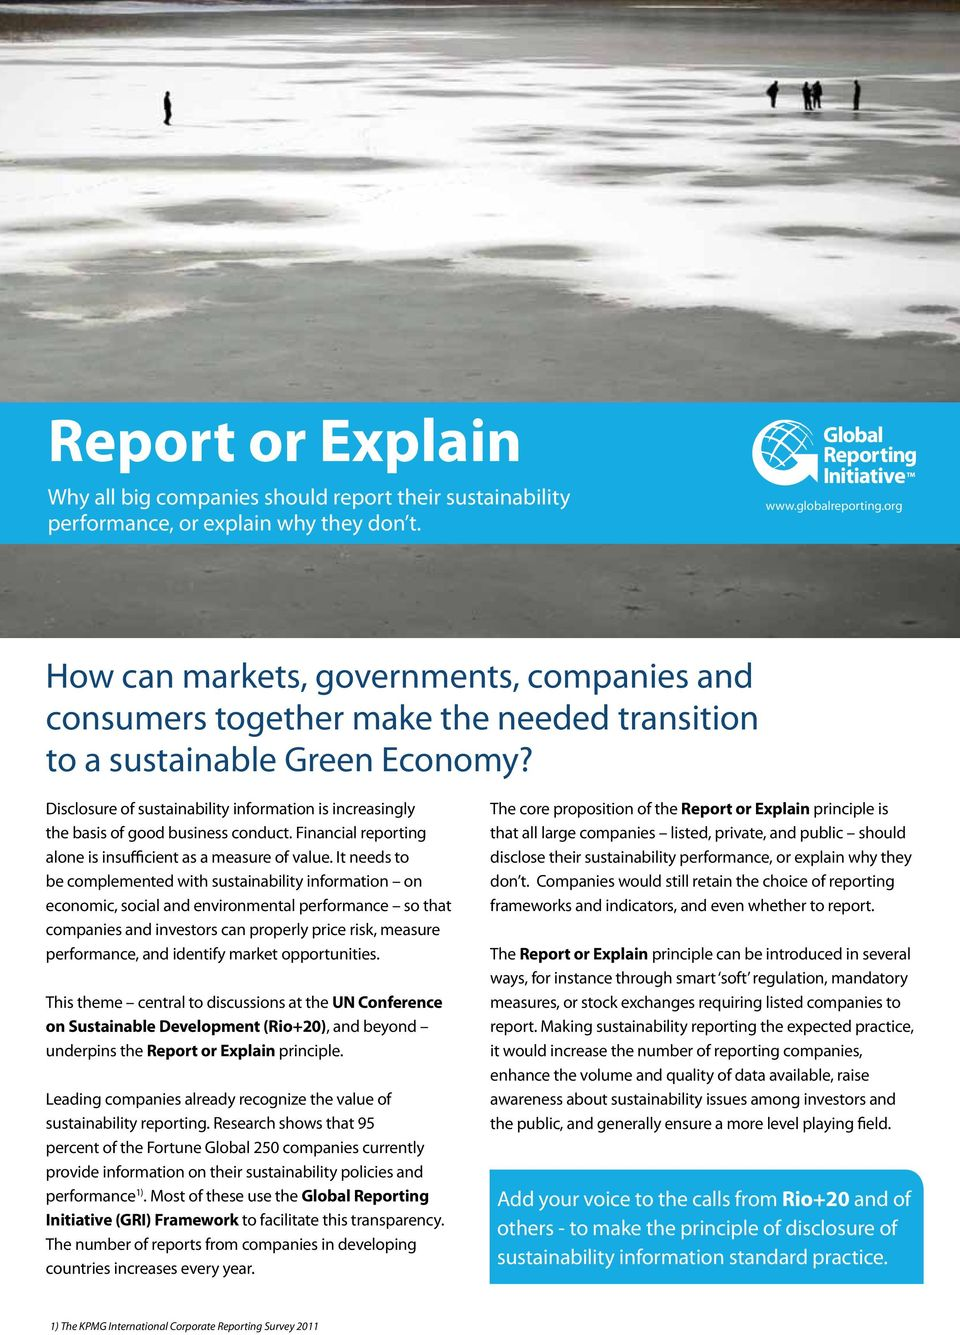 Disclosure of sustainability information is increasingly the basis of good business conduct. Financial reporting alone is insufficient as a measure of value.